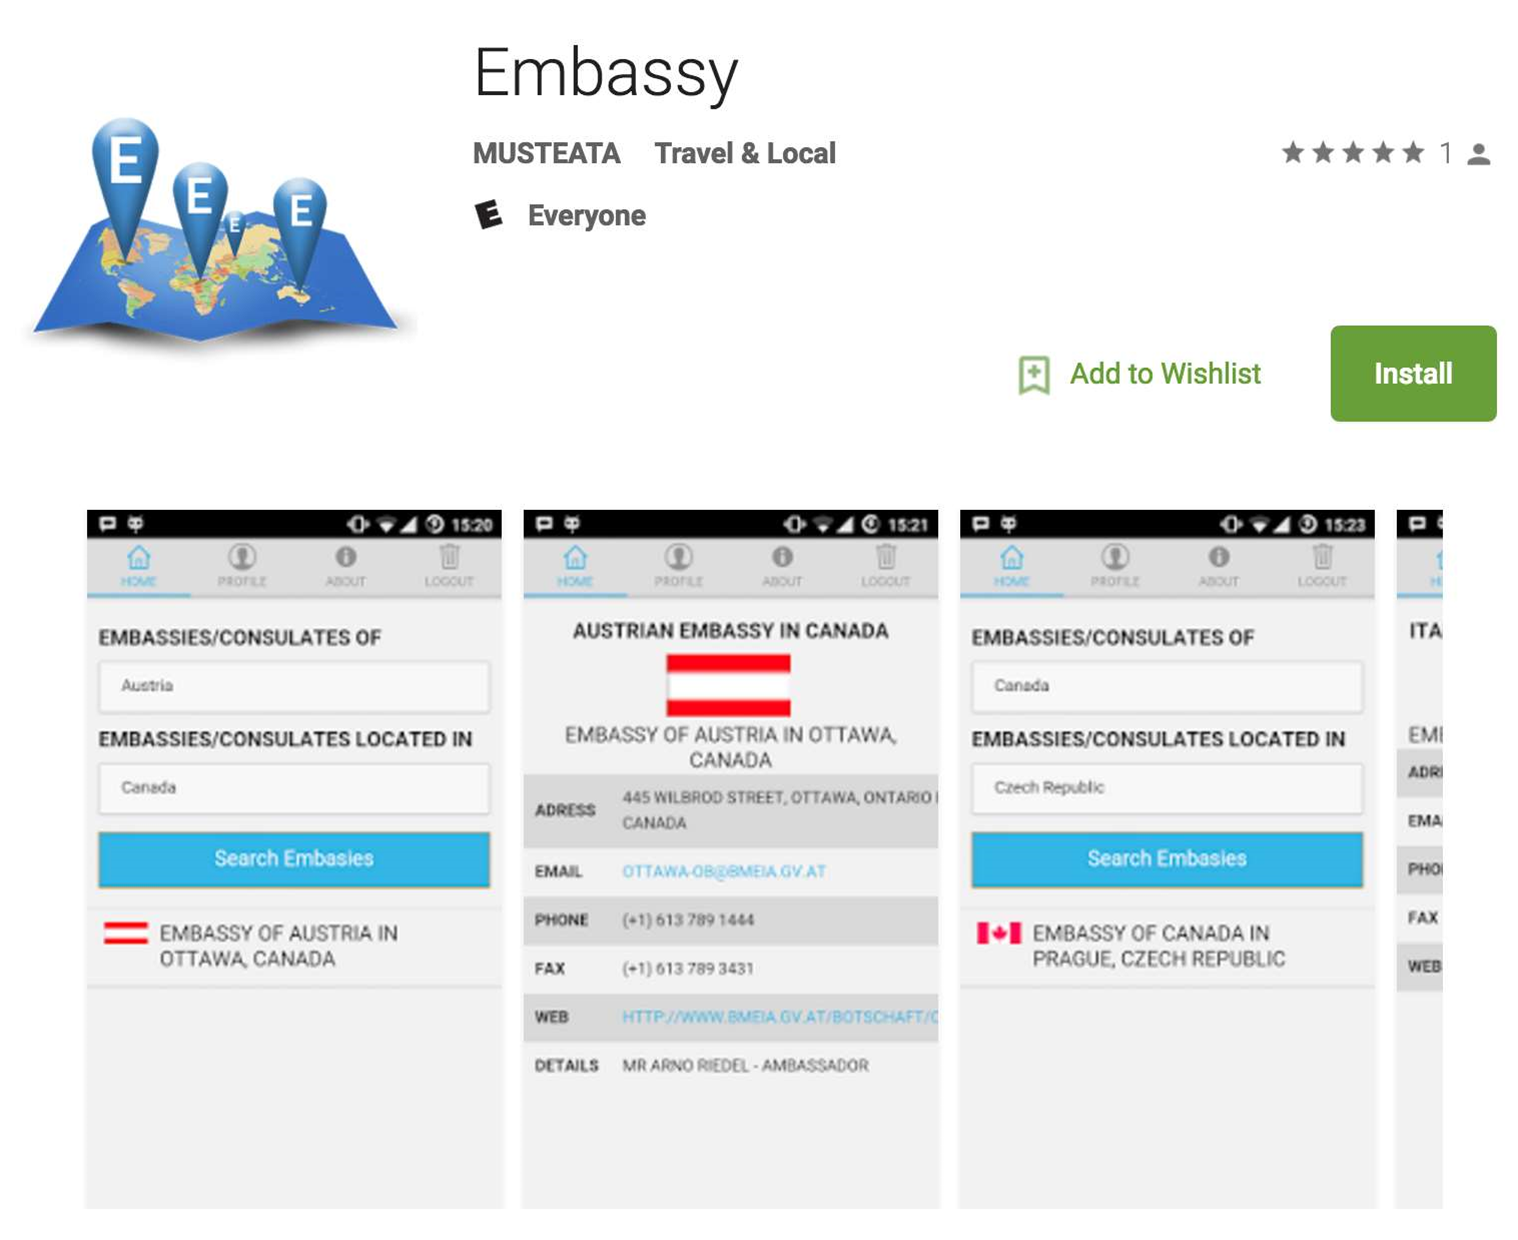 Google Play spyware apps target business travellers